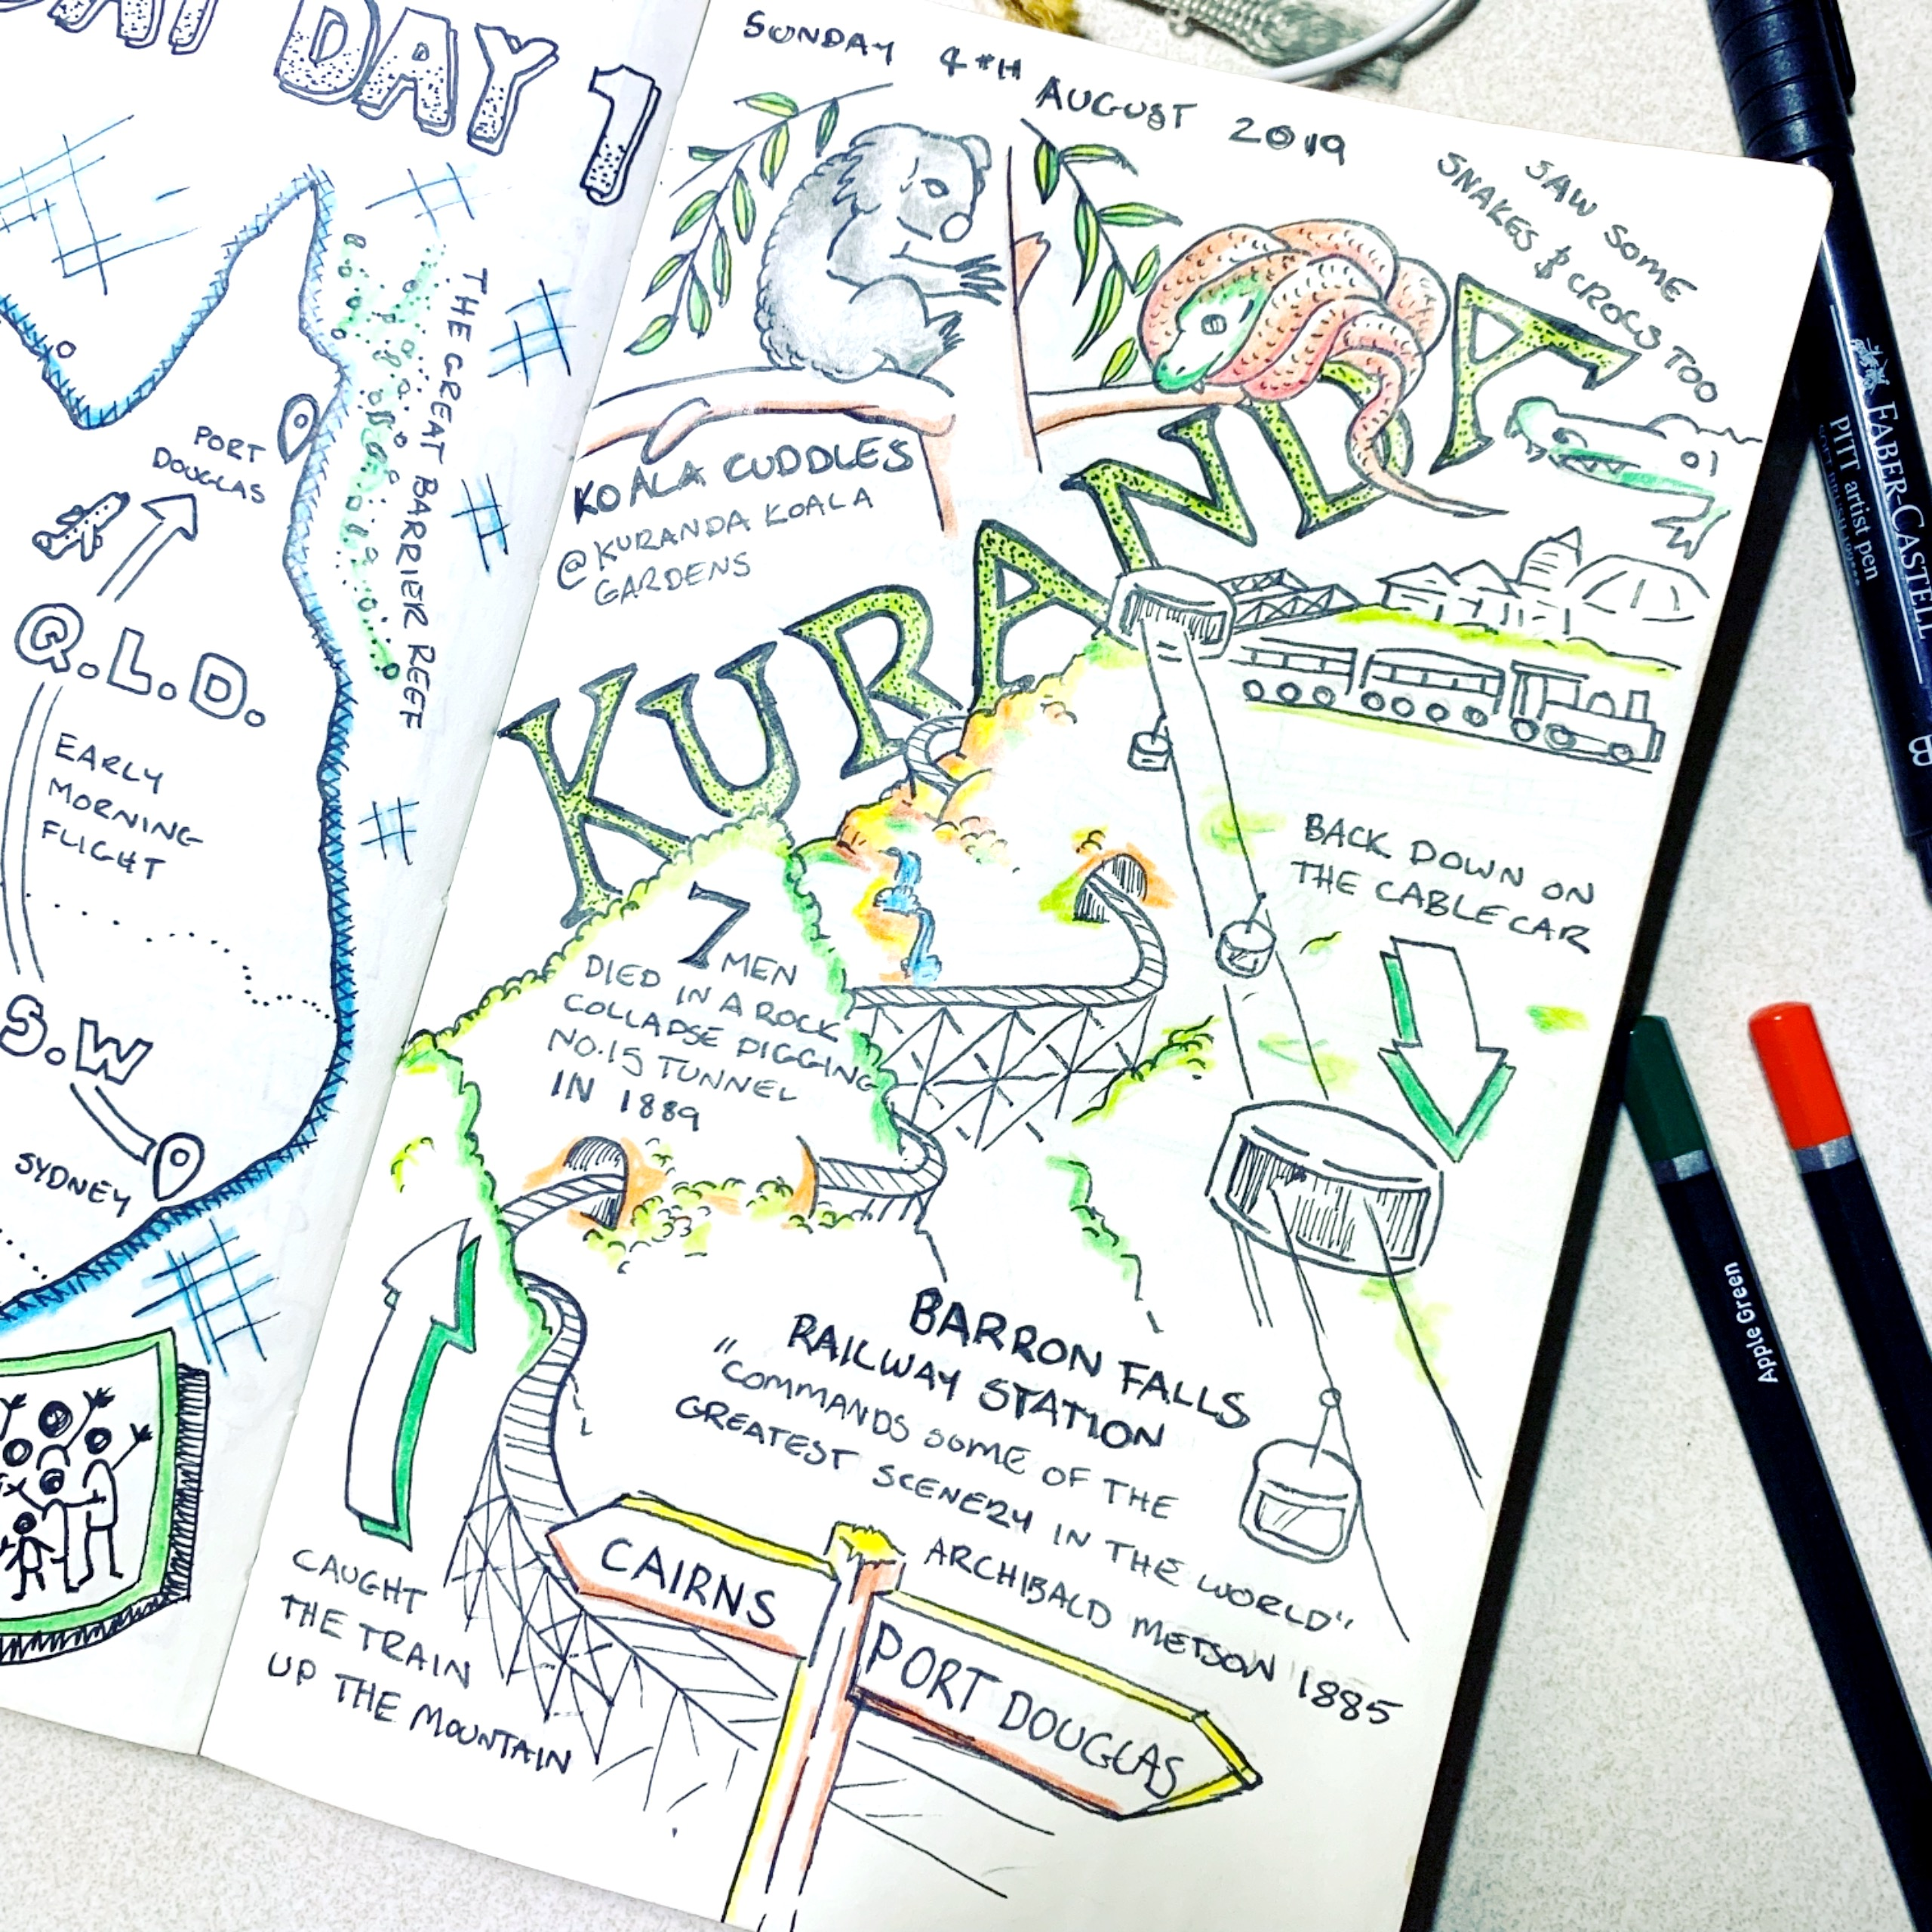 Sketch note of holiday in Kuranda, Port Douglas. Image